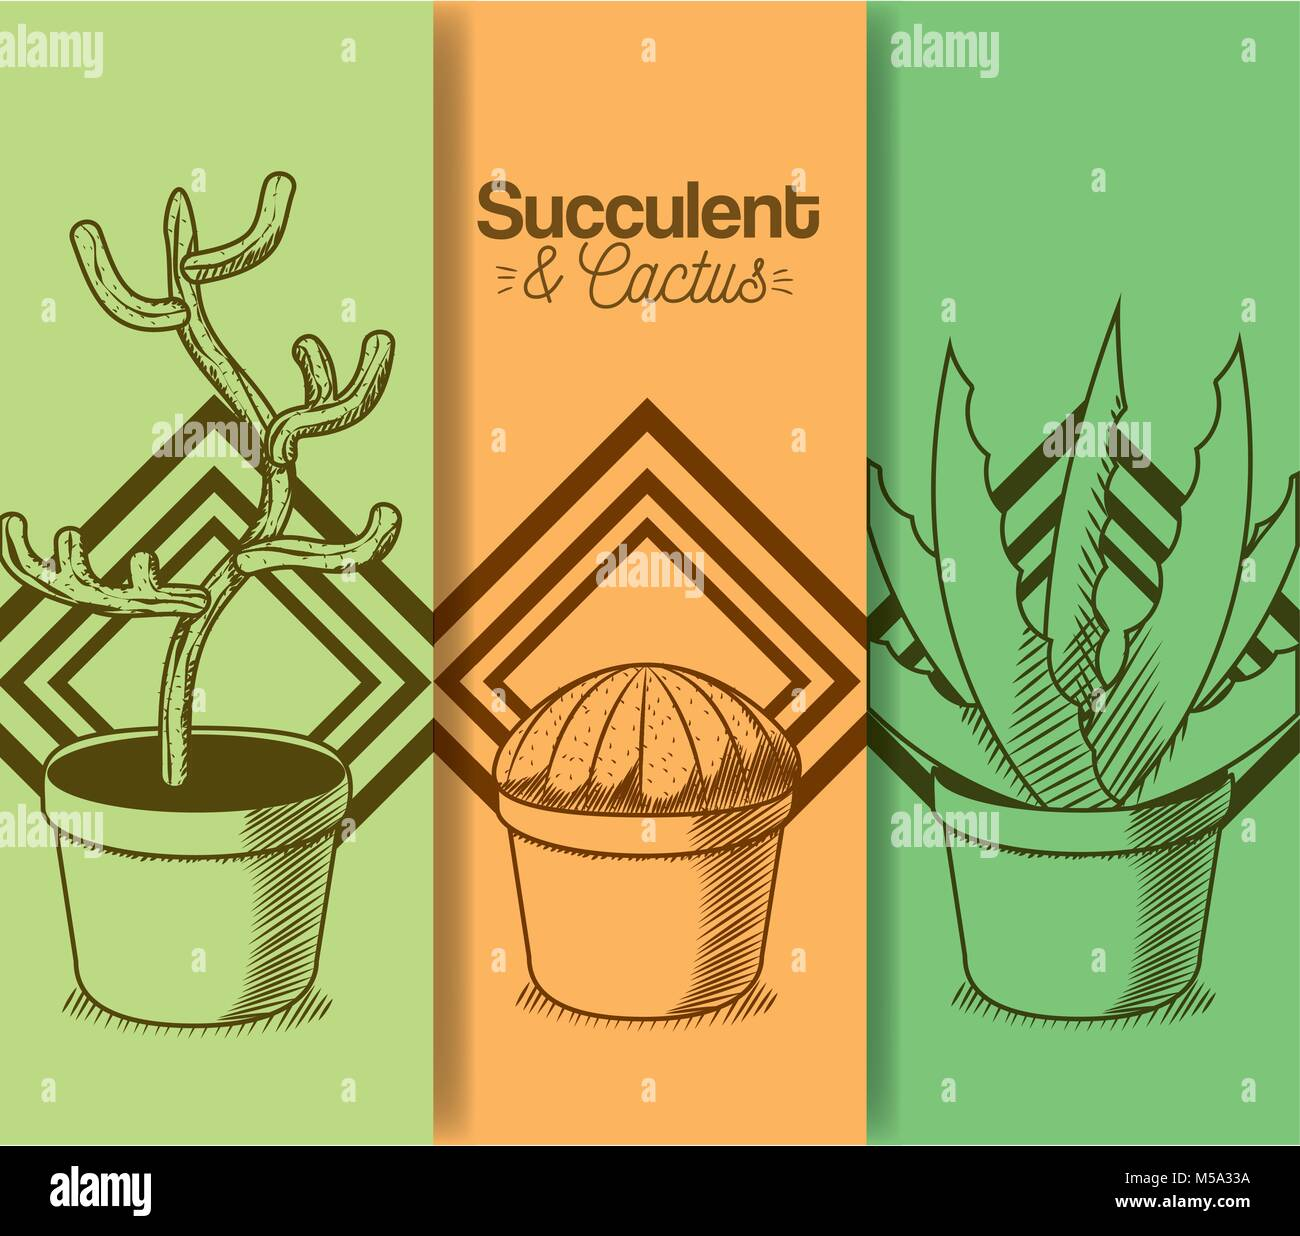 Succulent and cactus desert plants - Stock Image